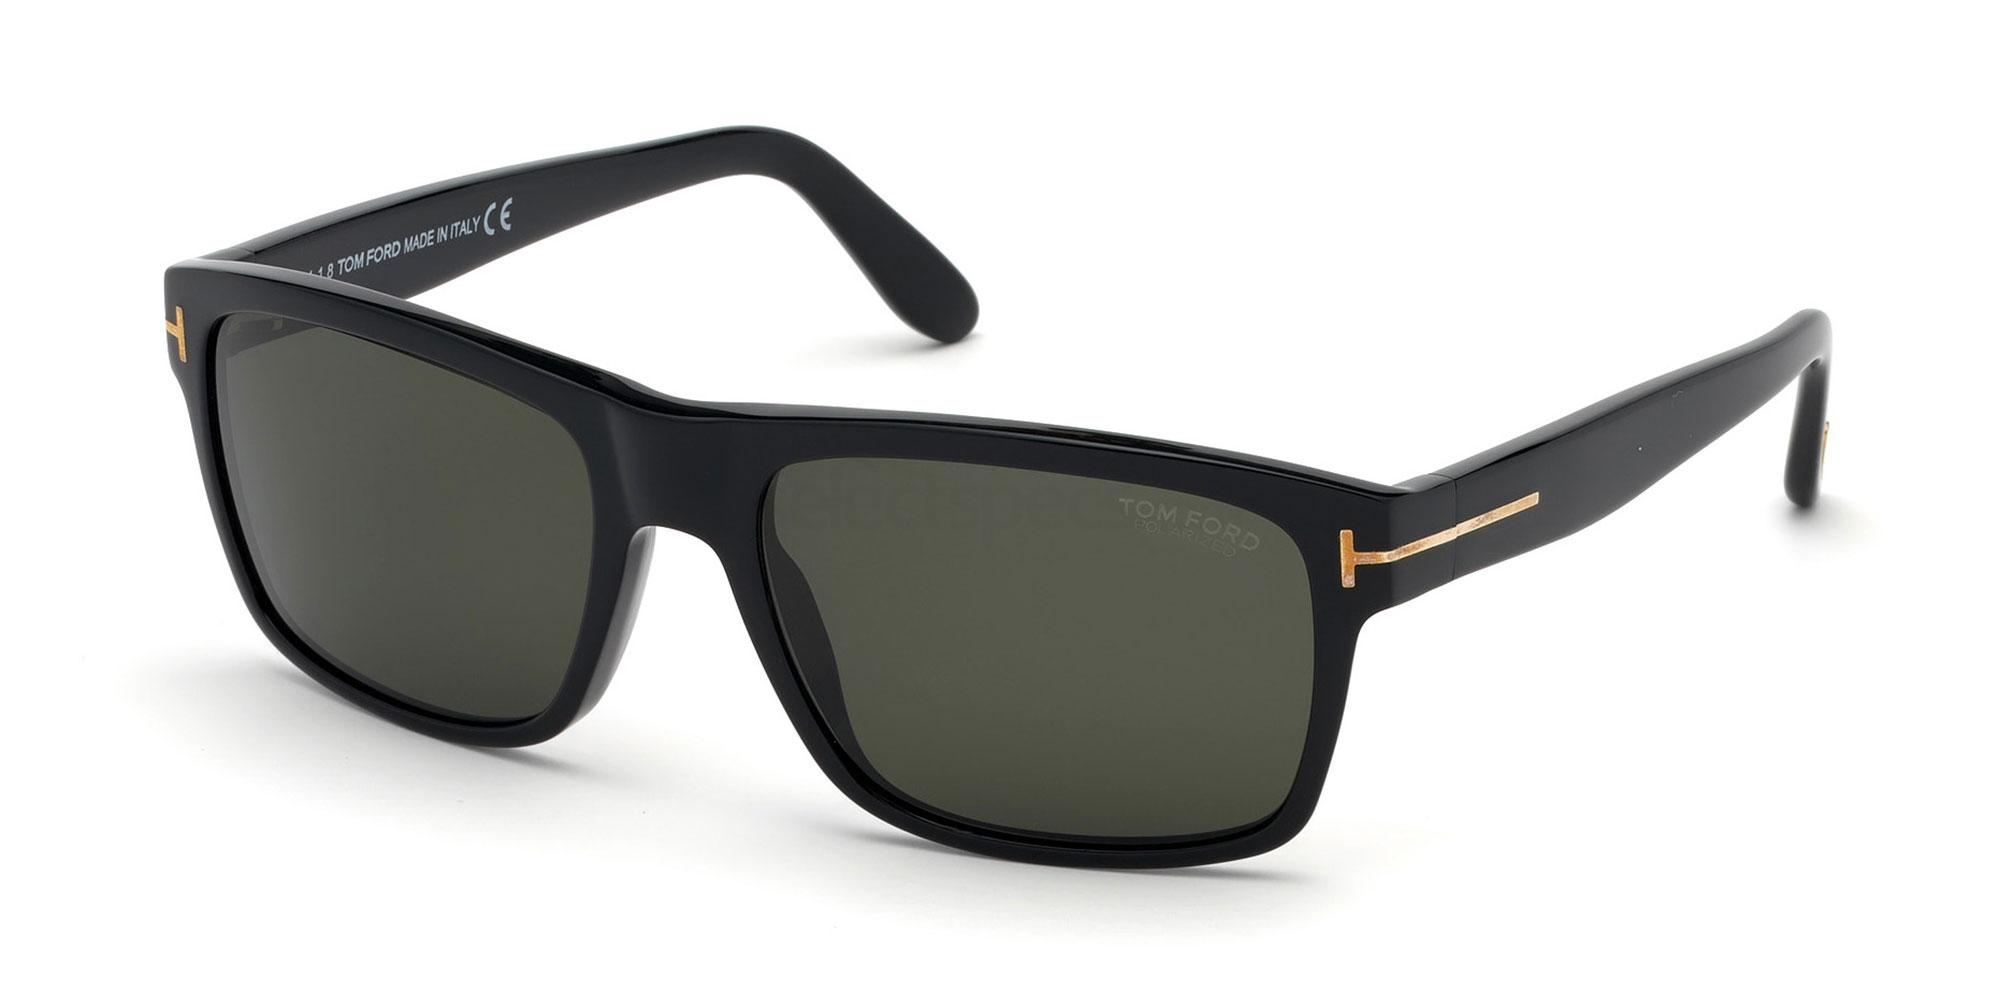 01D FT0678 Sunglasses, Tom Ford